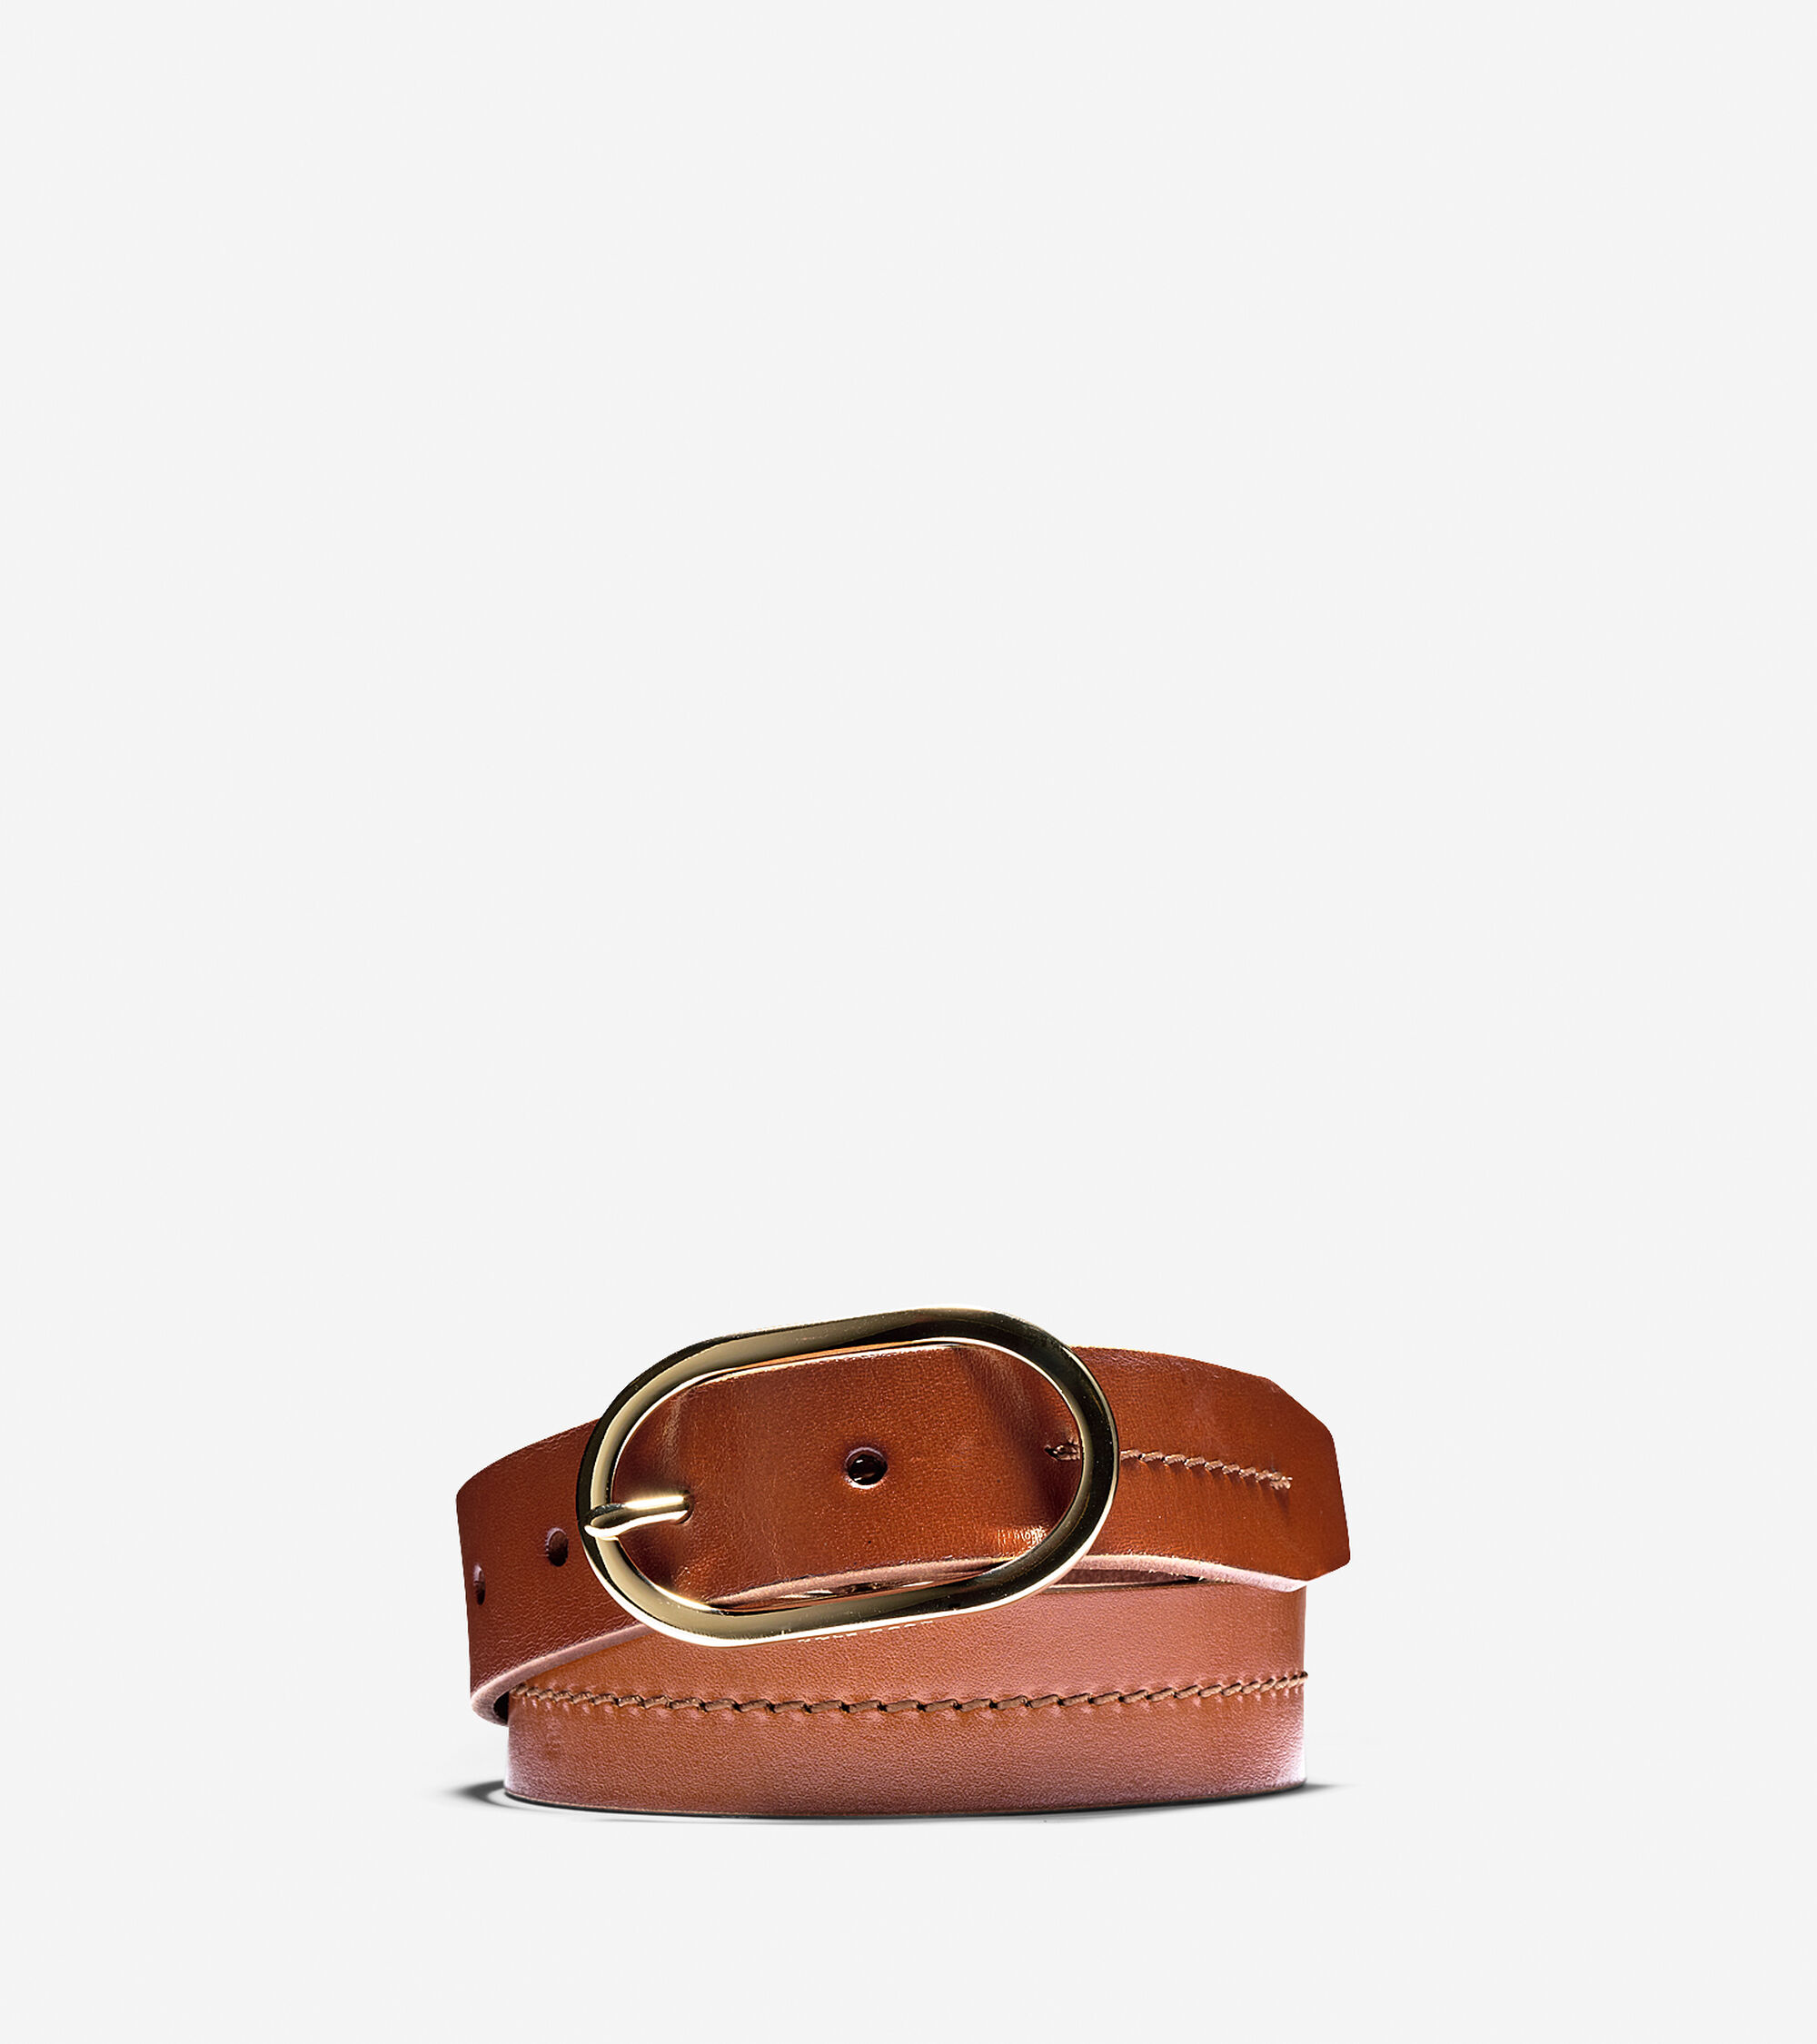 Accessories > Leather Circle Buckle Belt